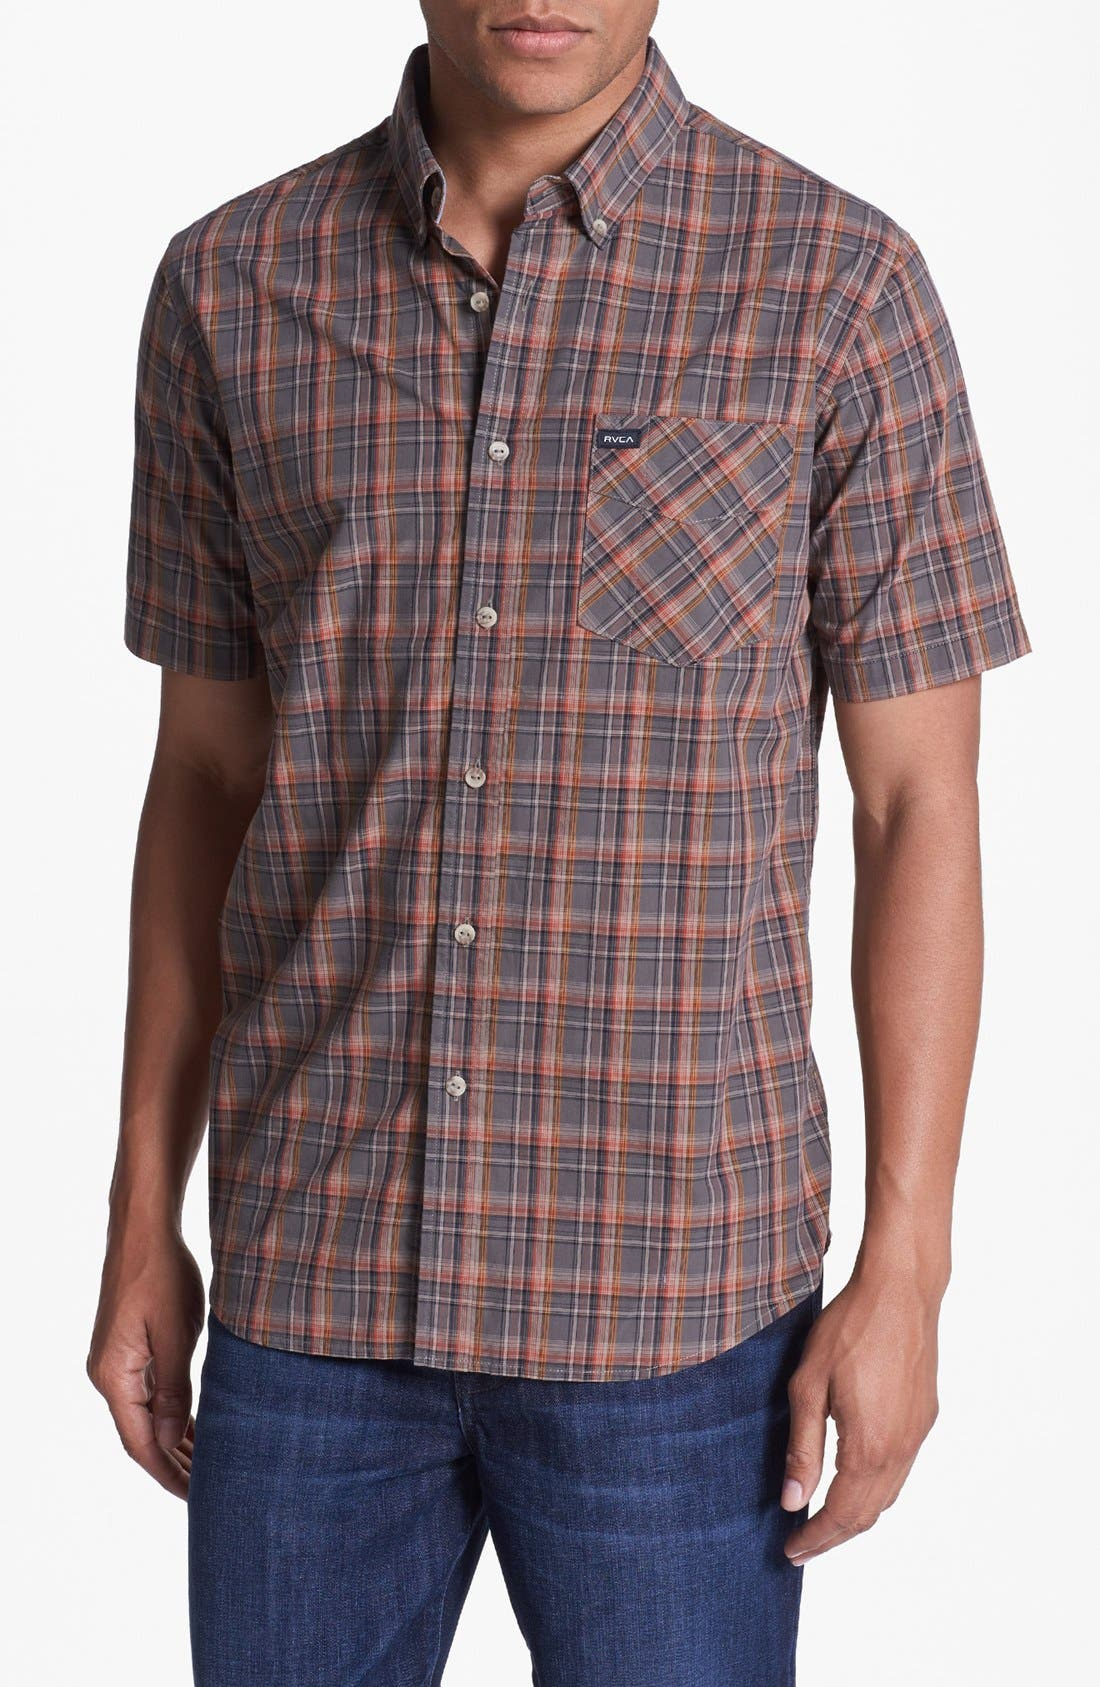 Alternate Image 1 Selected - RVCA 'Sundown' Short Sleeve Plaid Shirt